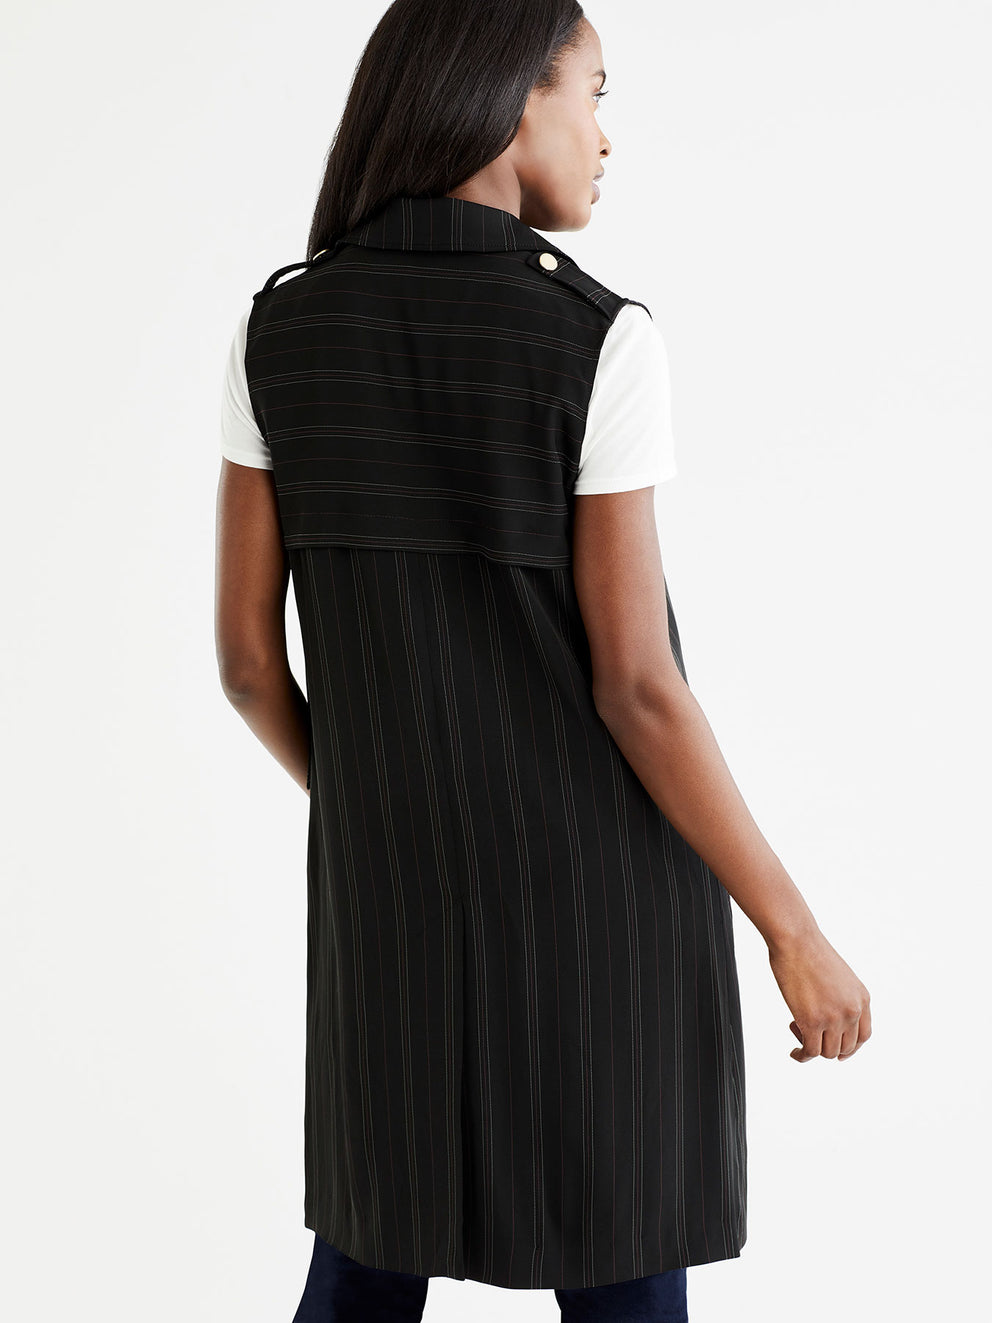 The Jones New York Pinstripe Long Vest in color Black Euro Stripe - Image Position 3